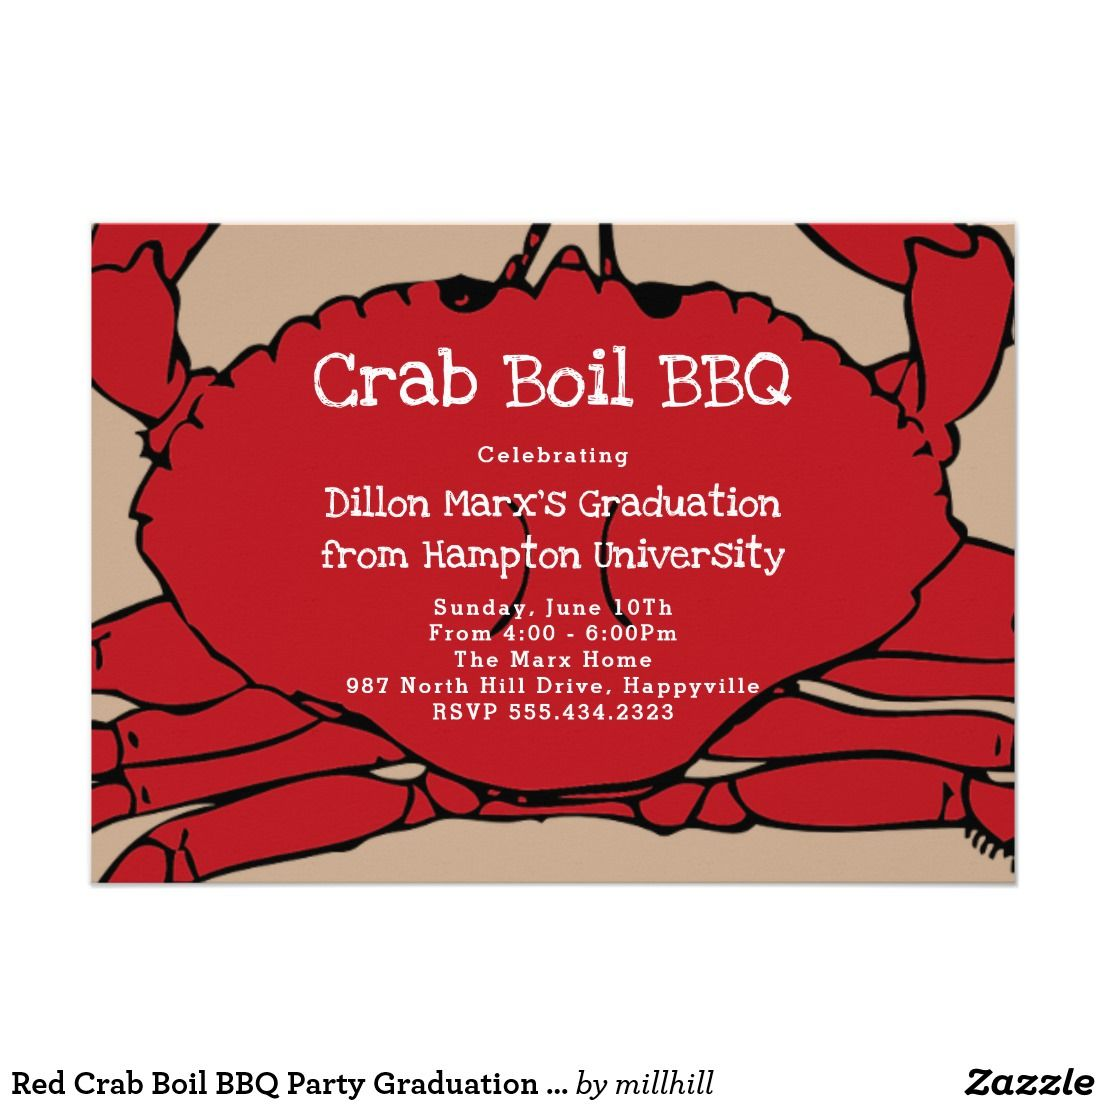 Red Crab Boil BBQ Party Graduation Invitation | Party invitation ...